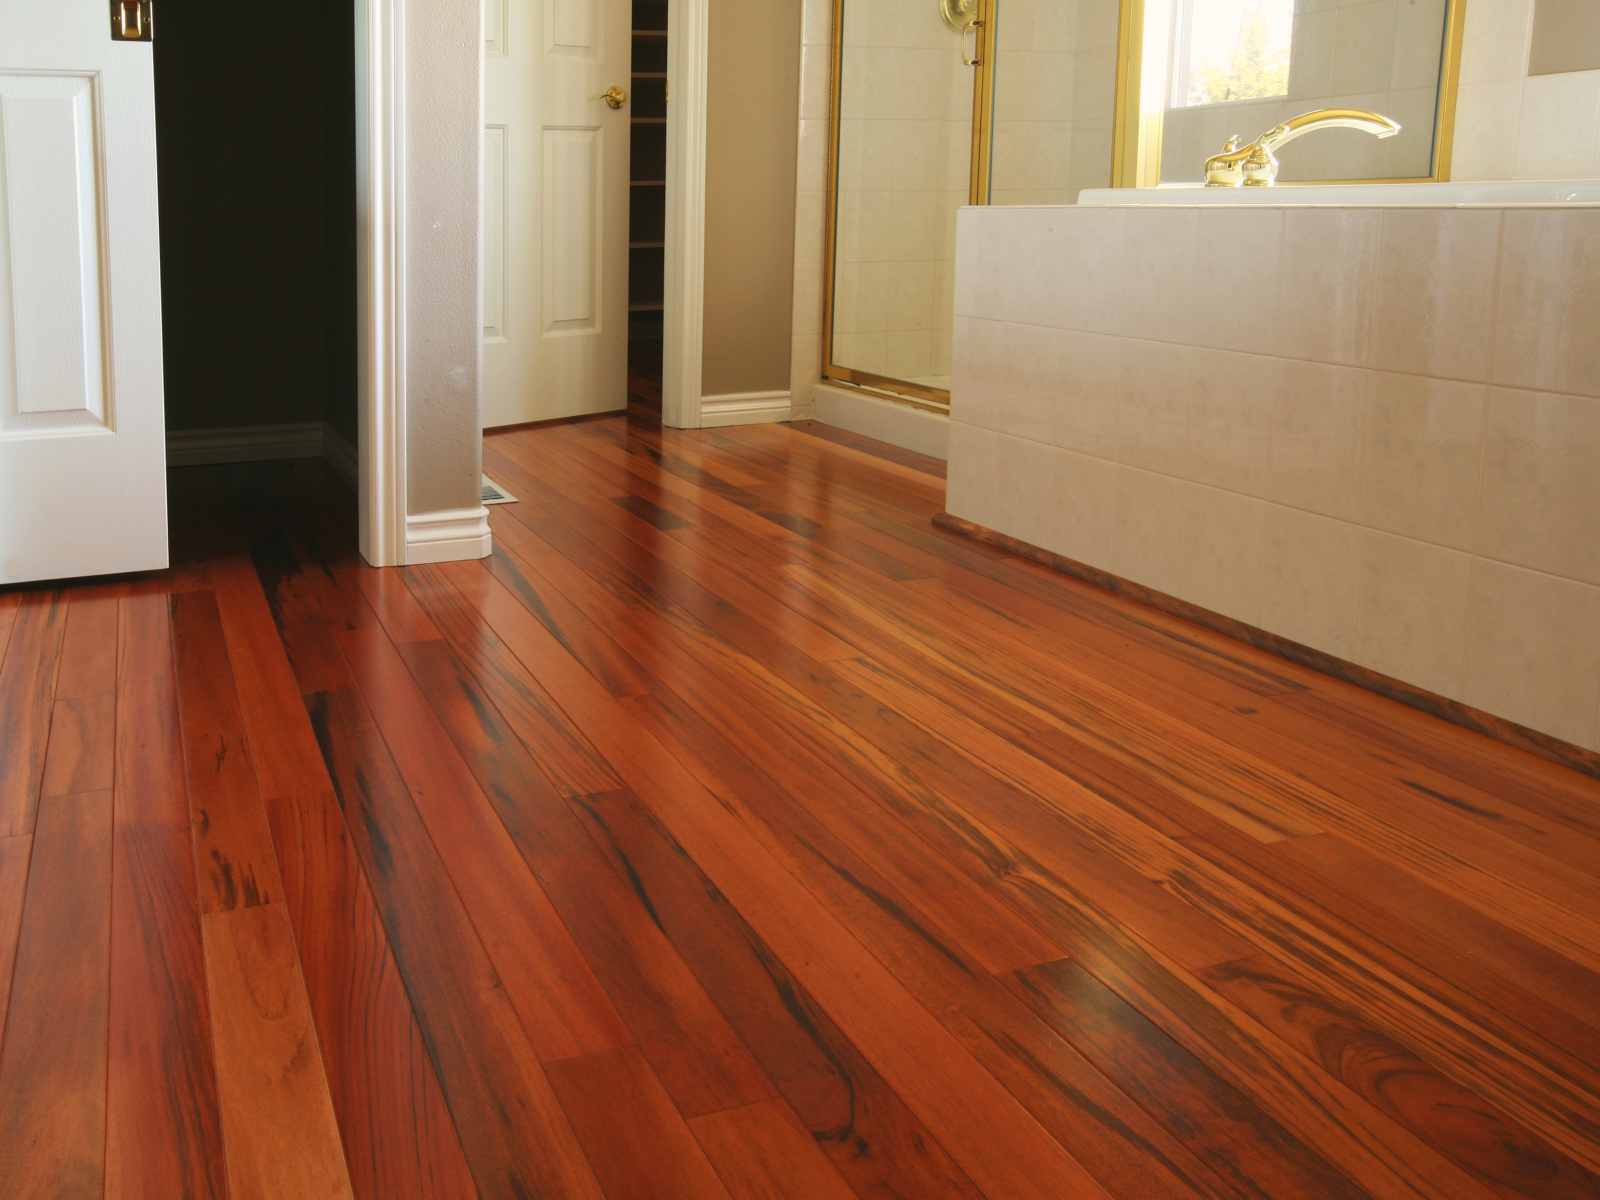 bamboo flooring eco friendly flooring for your home wood floors plus. Black Bedroom Furniture Sets. Home Design Ideas